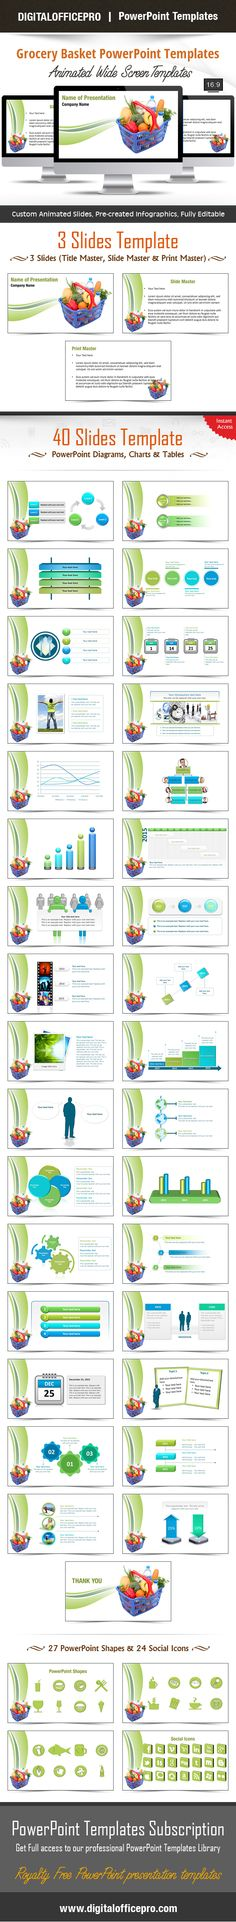 Metro rail tunnel powerpoint template backgrounds powerpoint impress and engage your audience with grocery basket powerpoint template and grocery basket powerpoint backgrounds from toneelgroepblik Choice Image